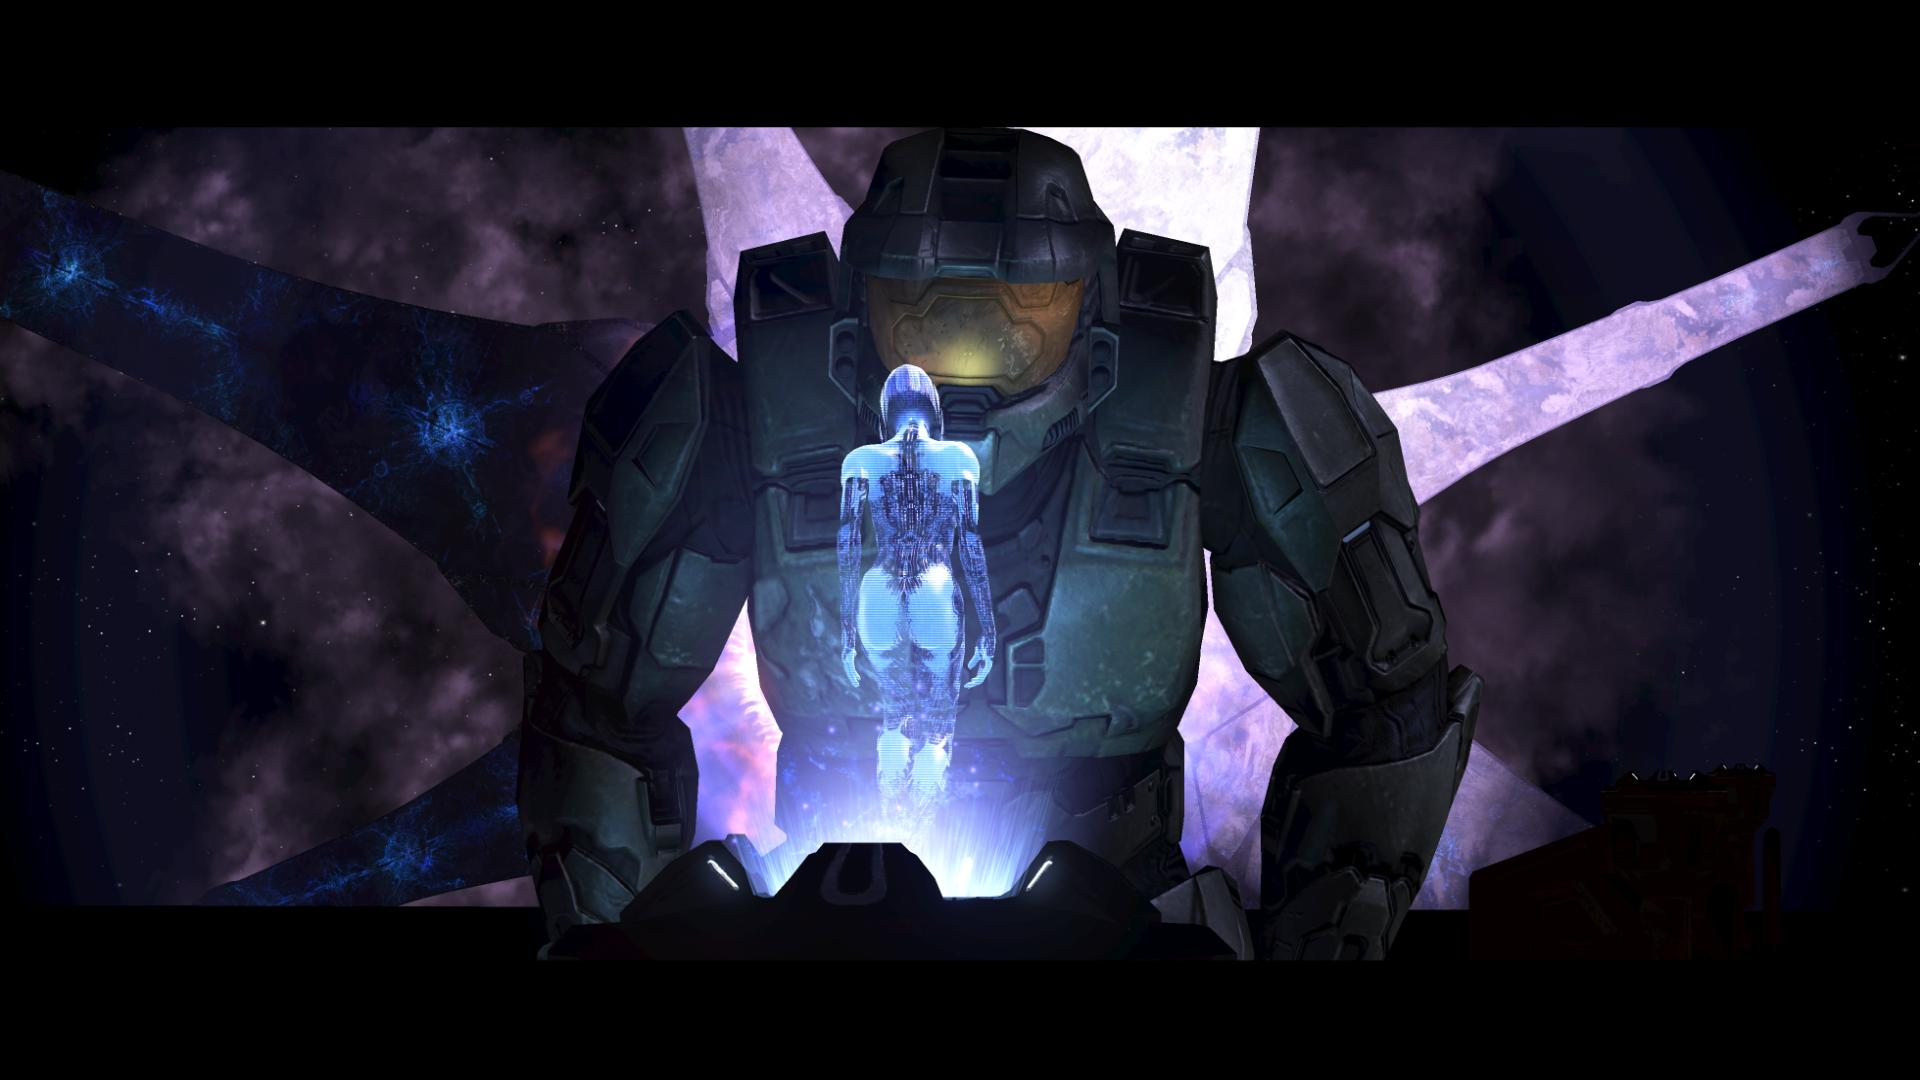 Pittsburgh Steelers Iphone Wallpaper Cortana And Master Chief Full Hd Wallpaper And Background